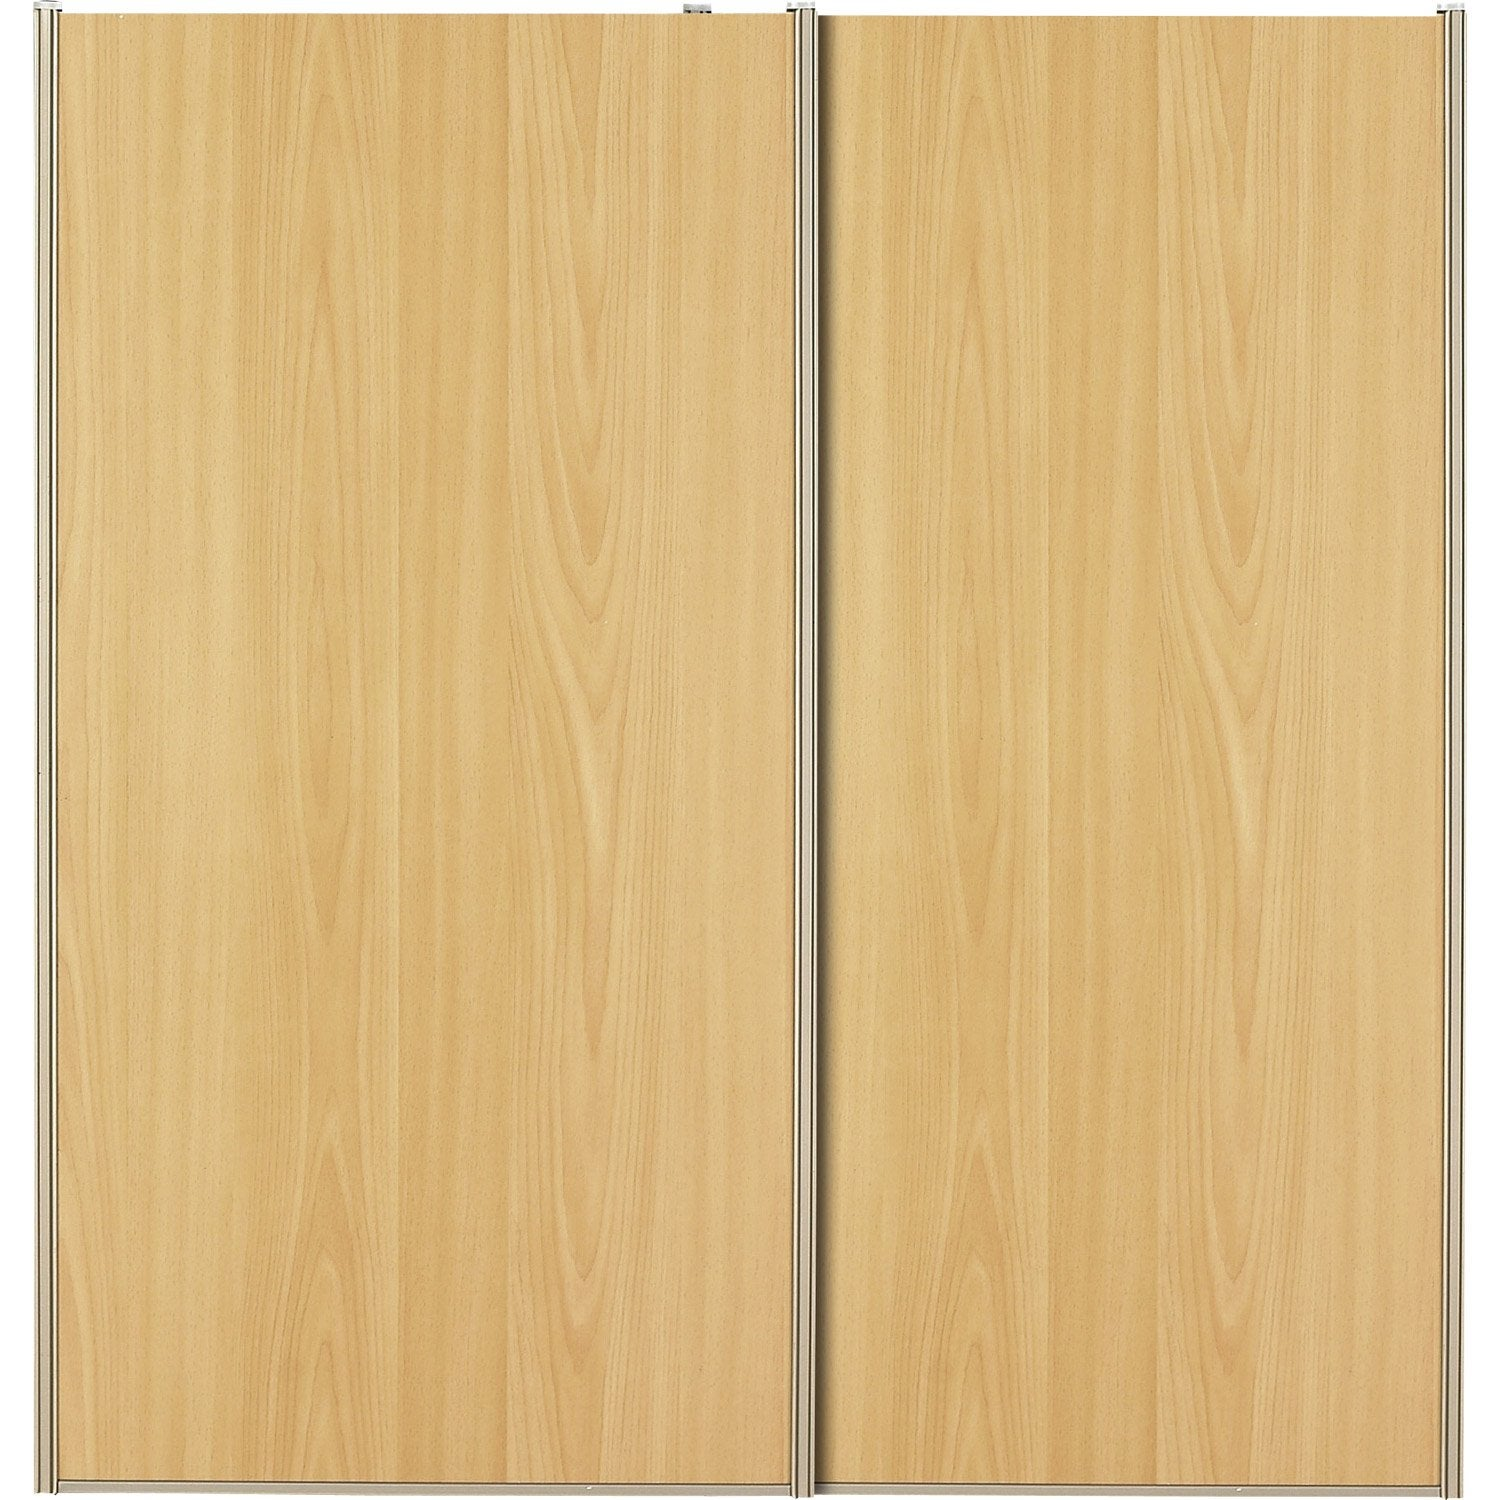 lot de 2 portes de placard coulissantes naturel 120x120cm leroy merlin. Black Bedroom Furniture Sets. Home Design Ideas